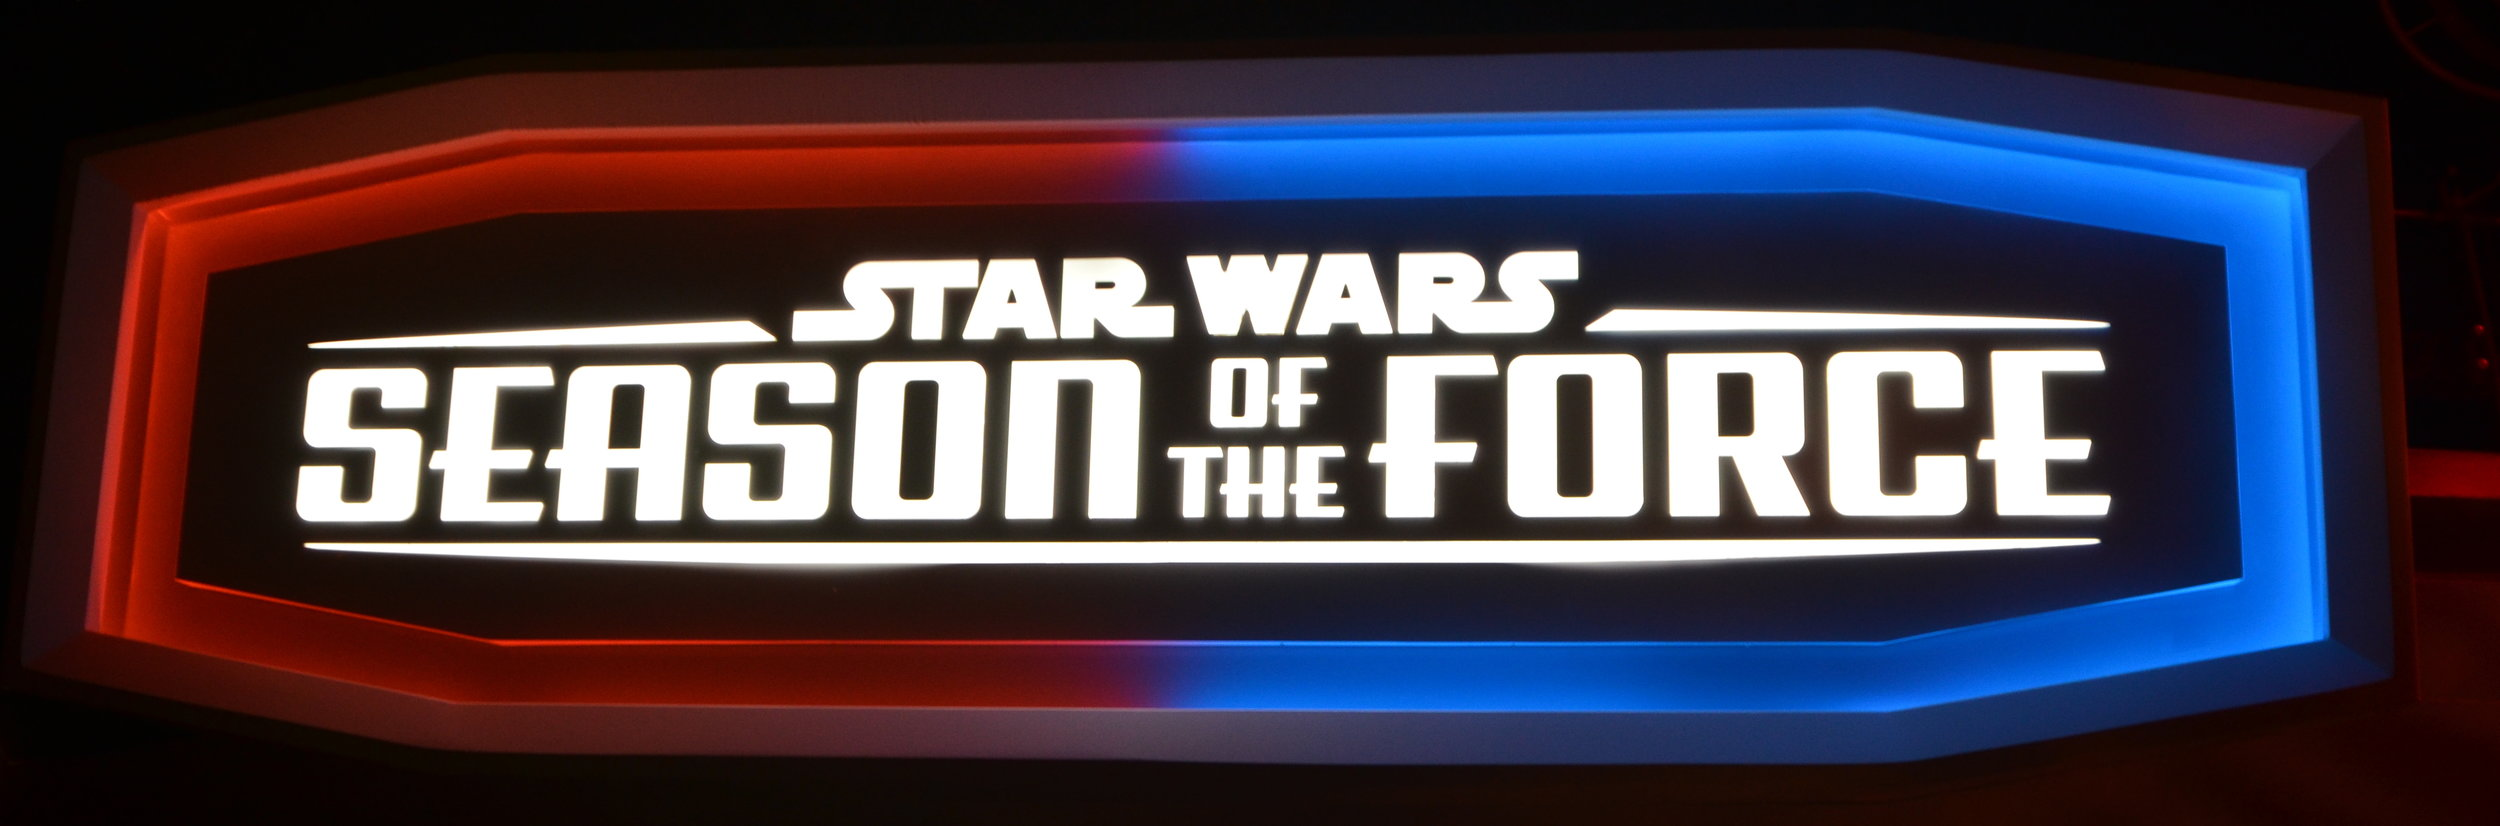 Season of the Force Sign